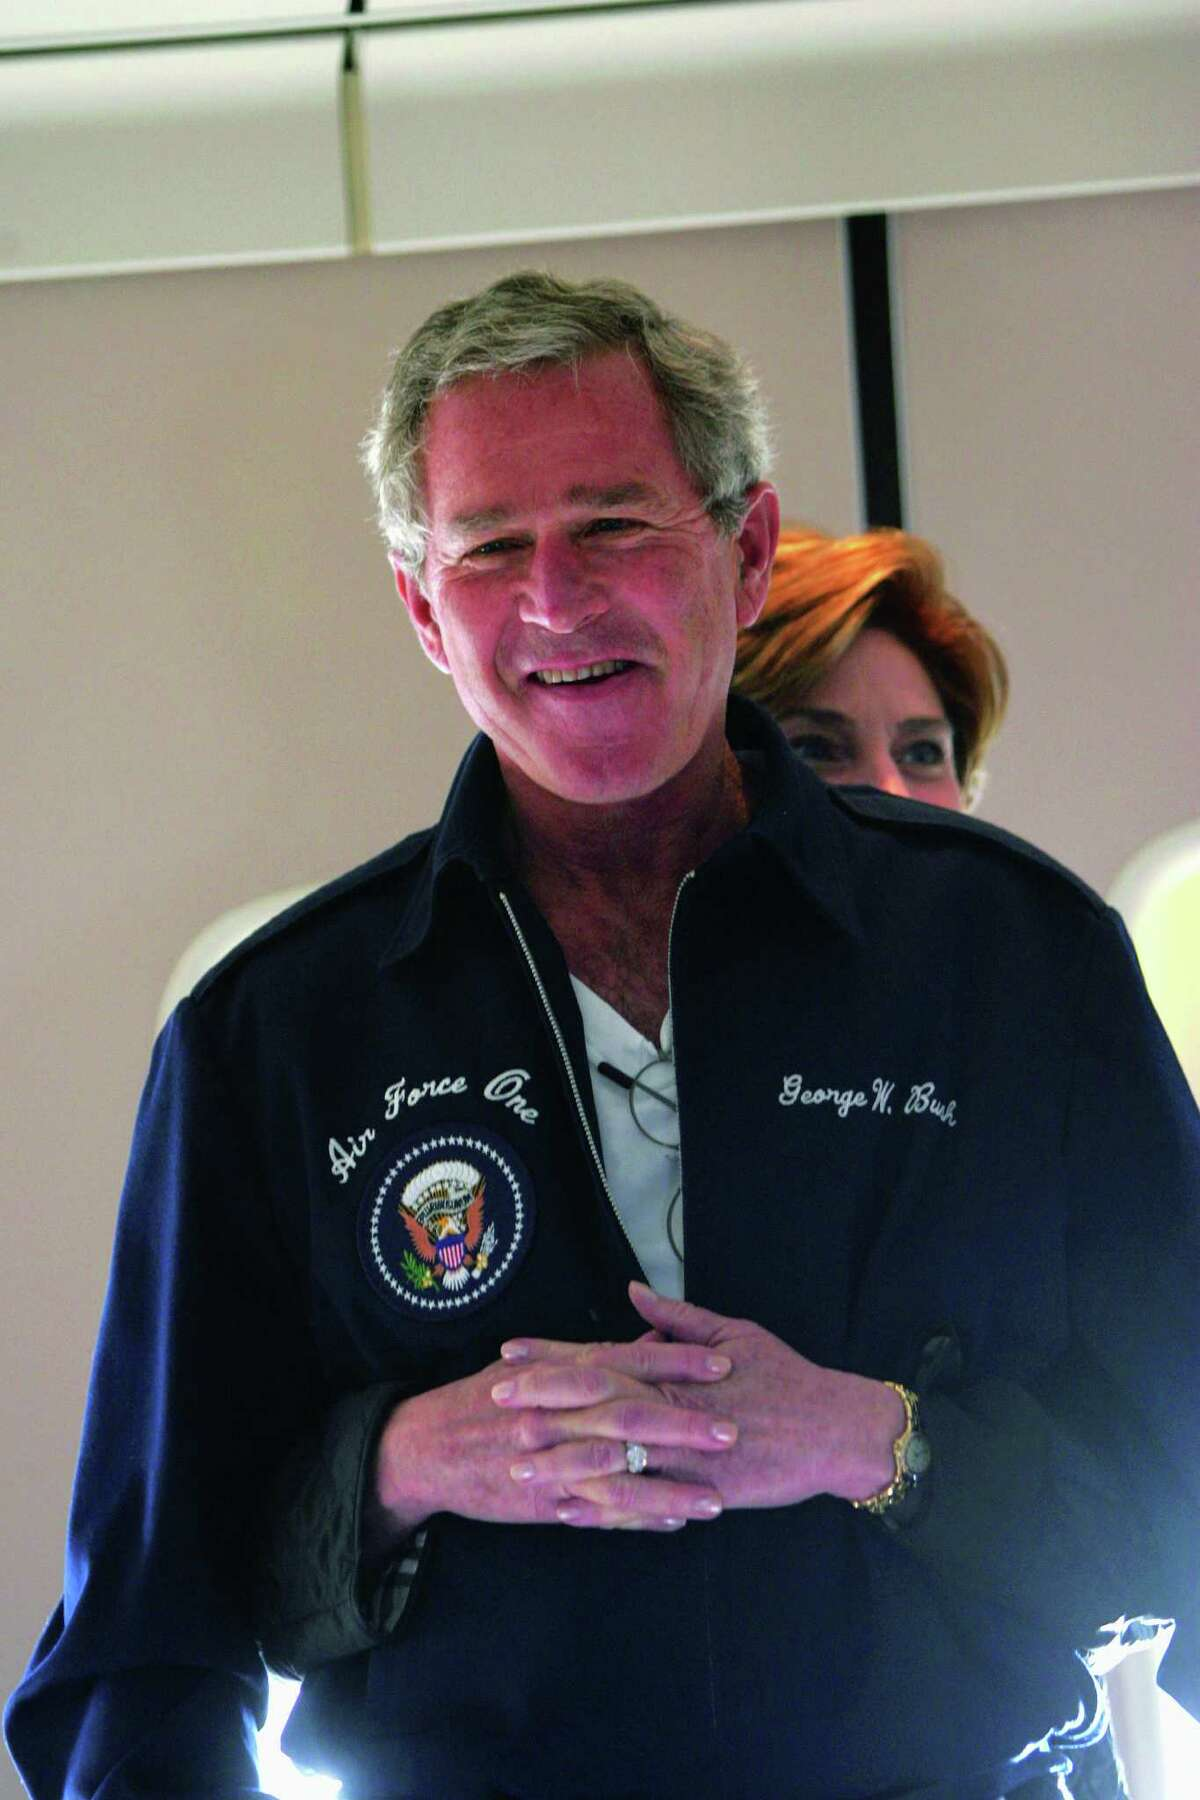 President George W. Bush and Mrs. Laura Bush spend a light-hearted moment together aboard Air Force One Friday, Oct. 15, 2004, en route to Iowa. Photo by Eric Draper, Courtesy of the George W. Bush Presidential Library and Museum